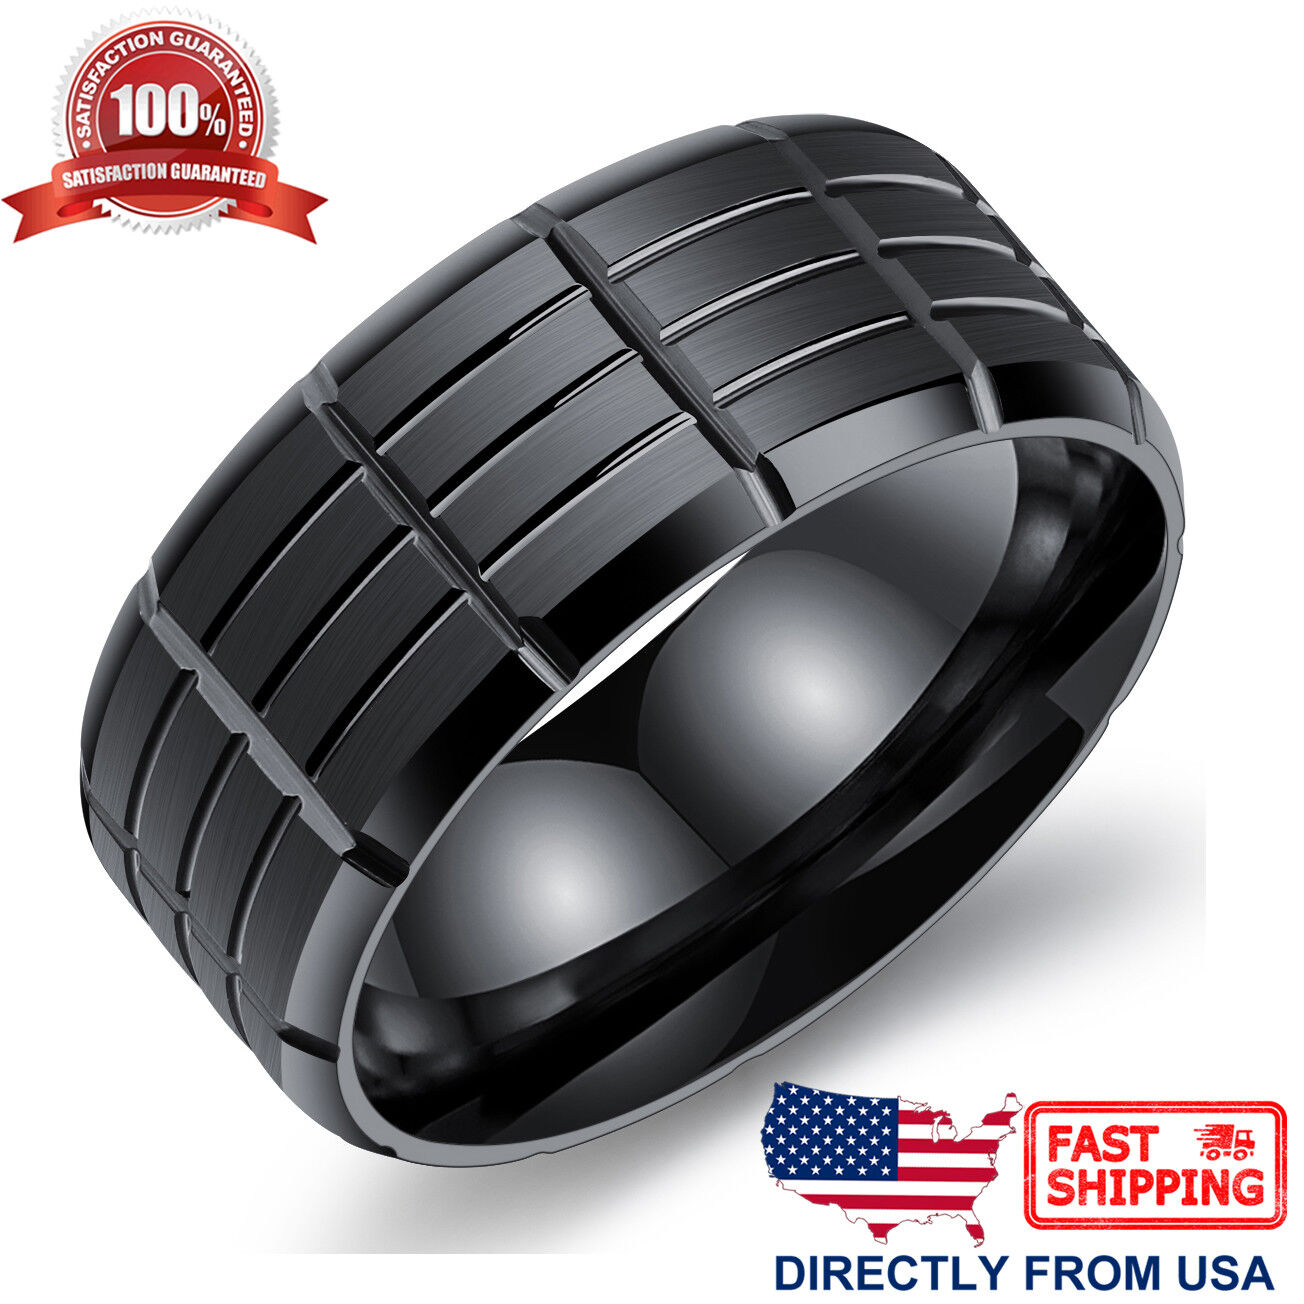 Men's Stainless Steel Ring, 9mm Comfort Fit Wedding Band Jewelry & Watches